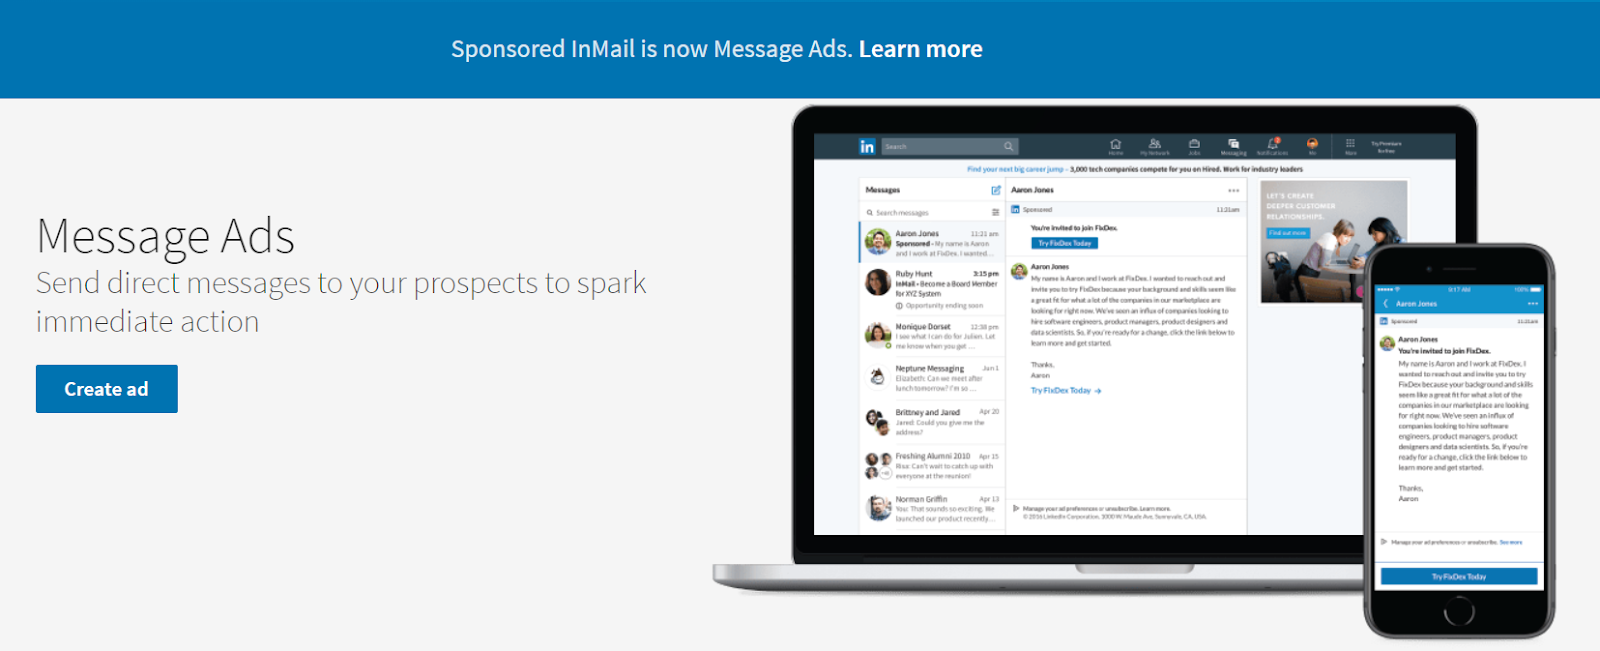 LinkedIn InMail/Message Ads are promoted messages you can send to others.